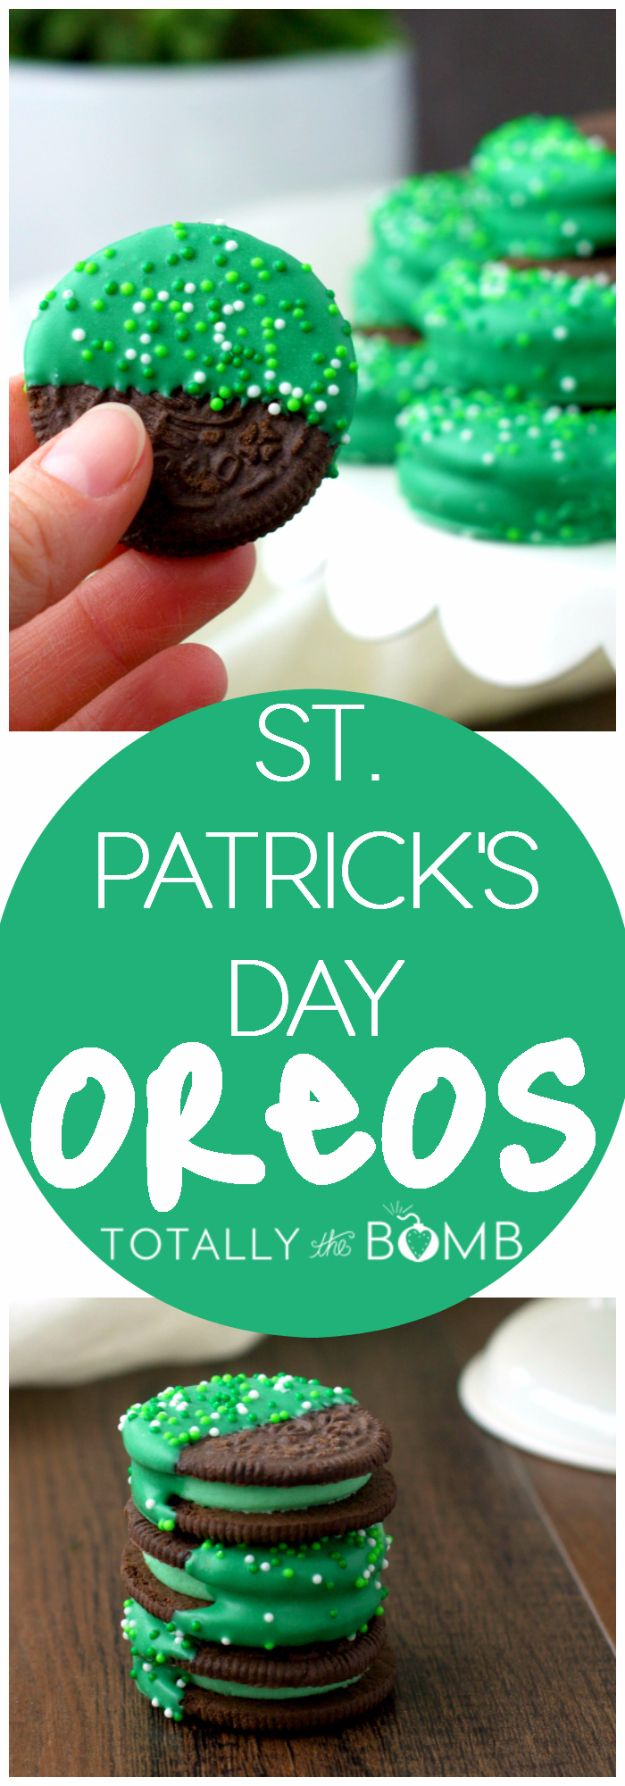 DIY St Patricks Day Ideas - St. Patrick's Day Oreos - Food and Best Recipes, Decorations and Home Decor, Party Ideas - Cupcakes, Drinks, Festive St Patrick Day Parties With these Easy, Quick and Cool Crafts and DIY Projects http://diyjoy.com/st-patricks-day-ideas